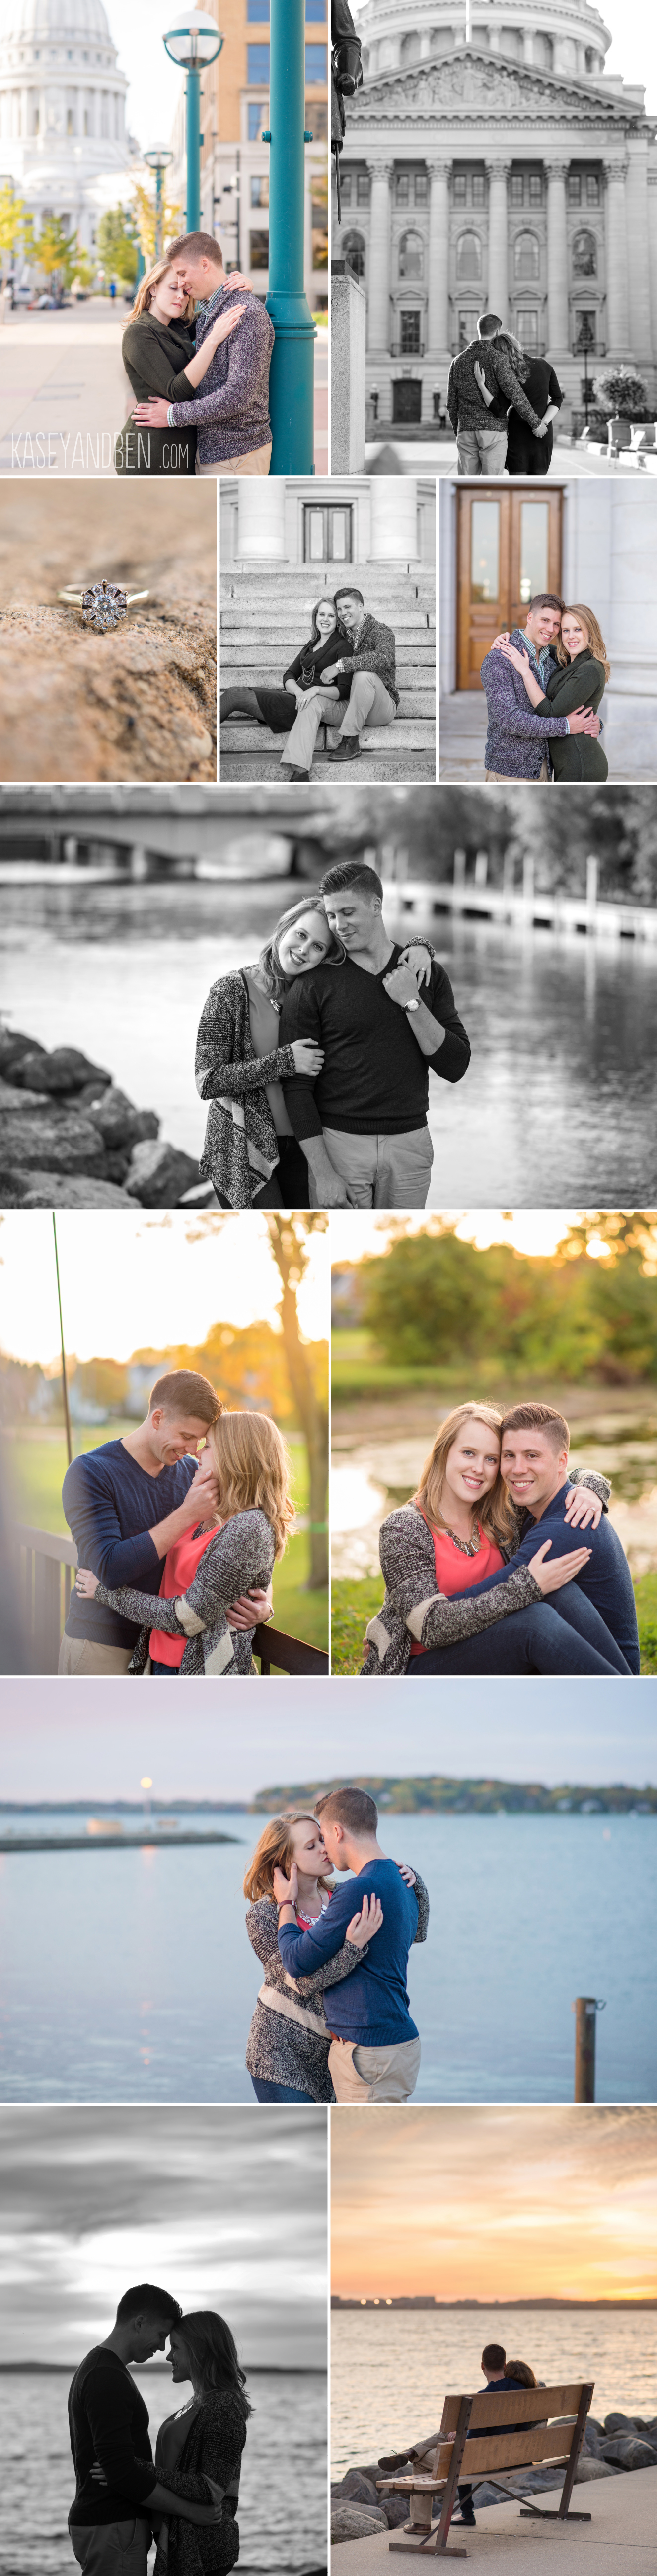 Madison-Wisconsin-Engagement-Photos-Capital-Tenney-Park-Photographer-Fall